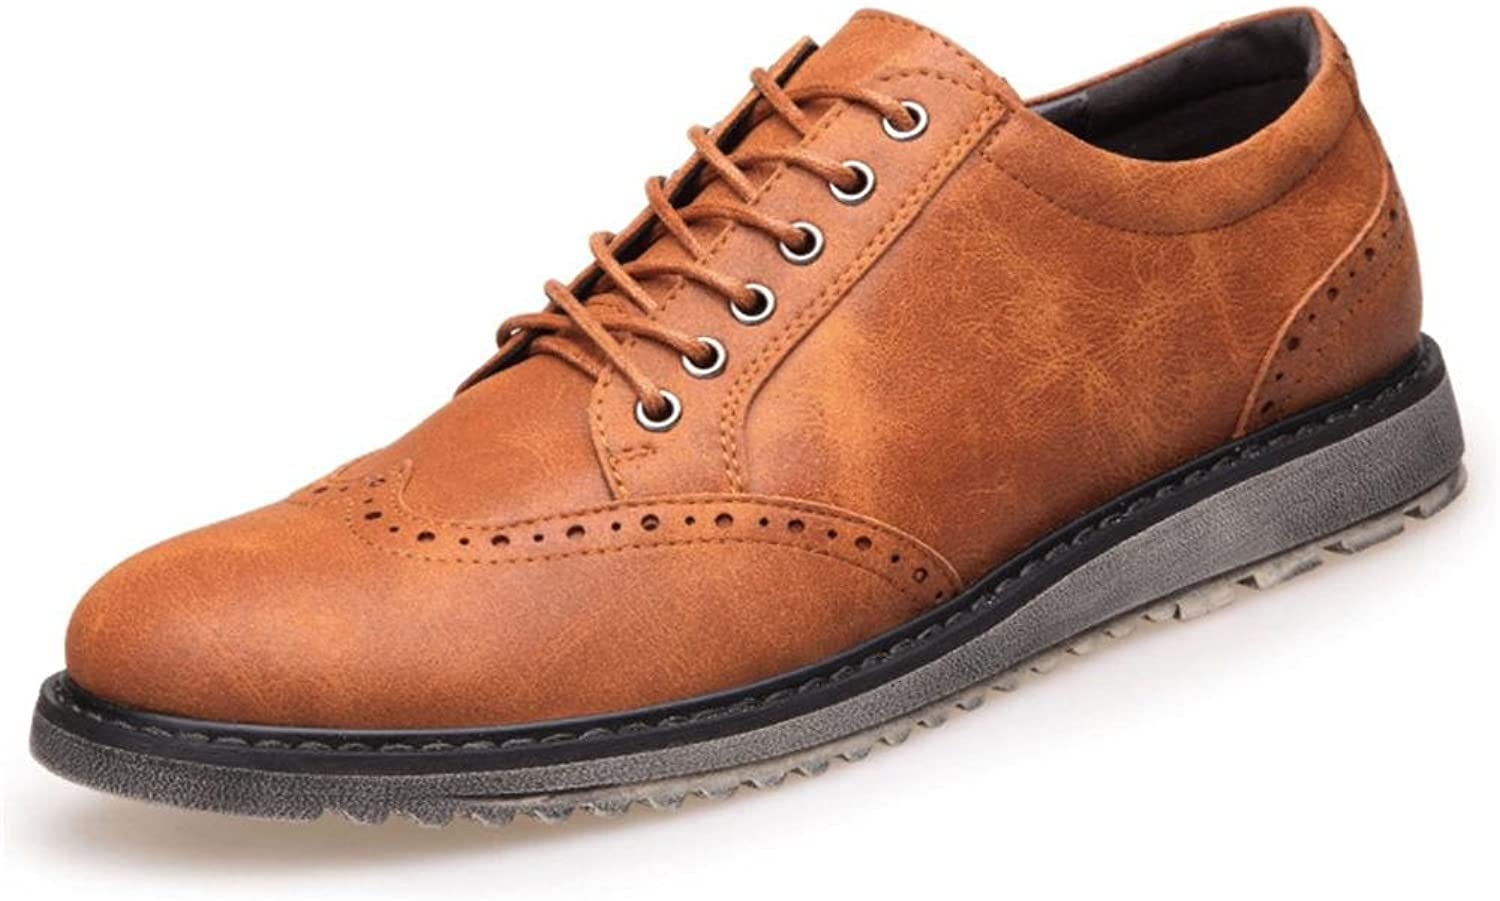 Oxford Dress shoes for Men Formal Leather shoes -Casual Classic Mens shoes-Men's Locke carved shoes